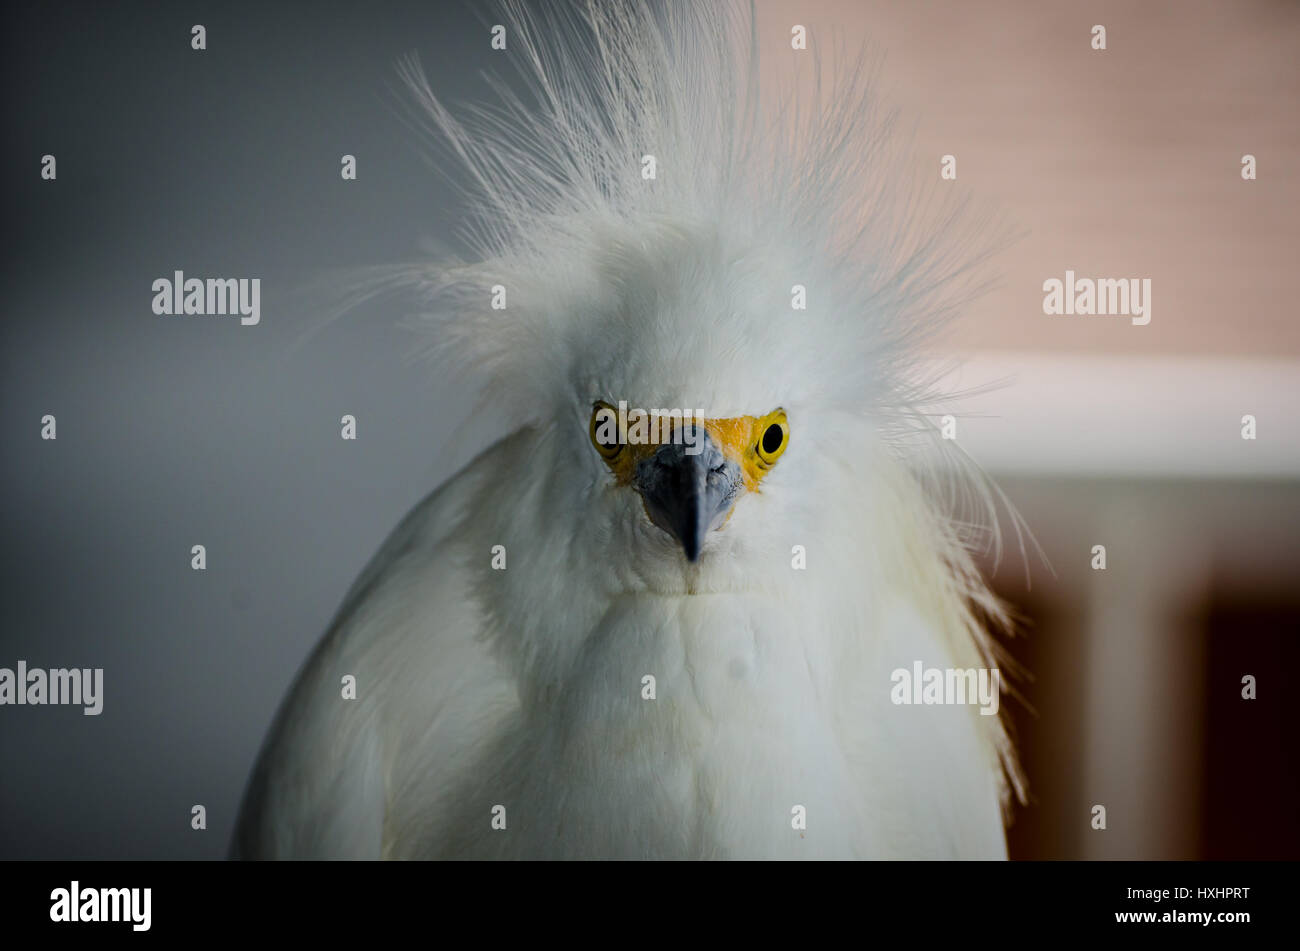 Closeup portrait of Snowy Egret (Egretta thula) near Englewood, Florida, USA. - Stock Image